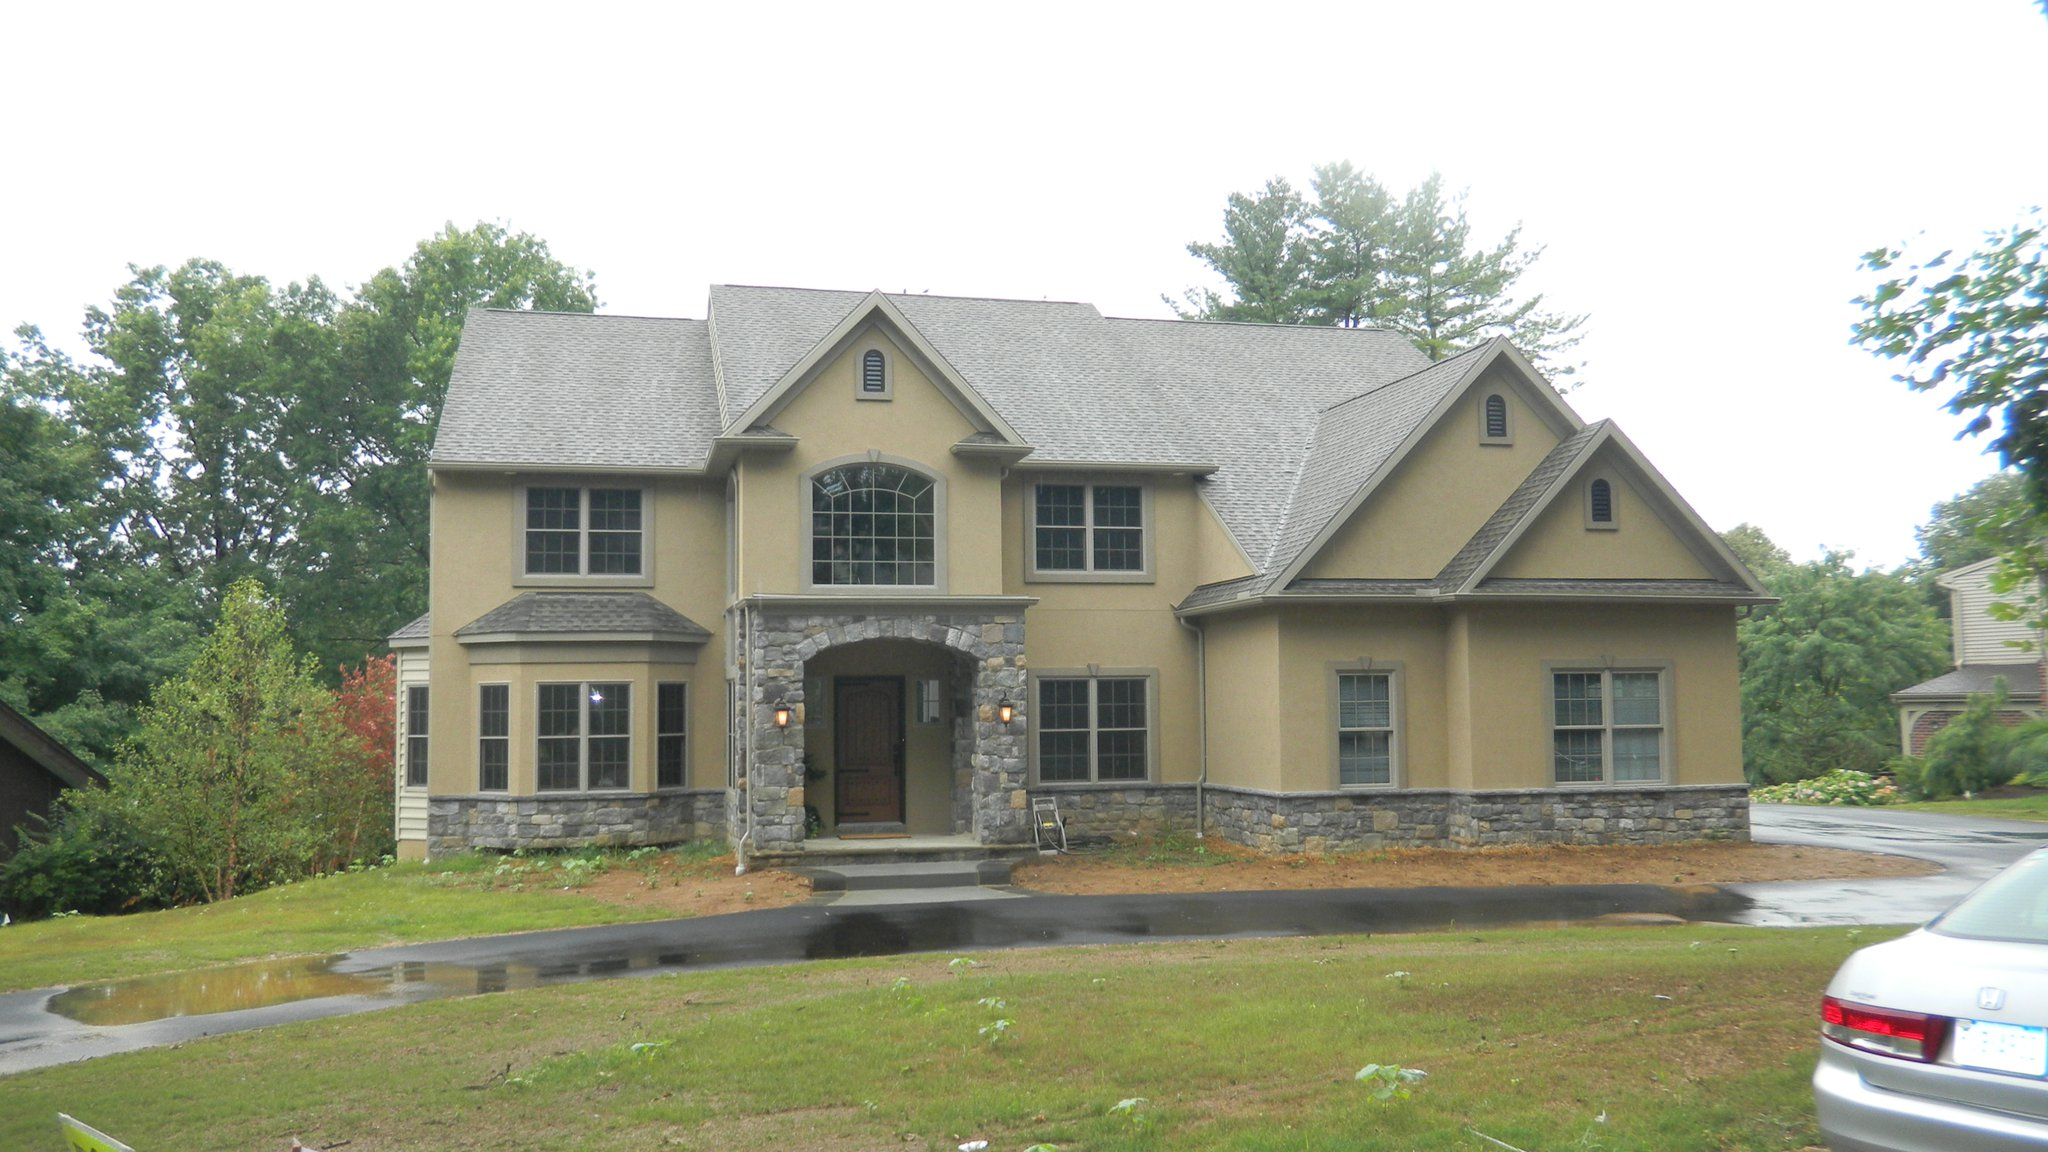 L&L Services PA completed stucco work on this house in Berks County PA